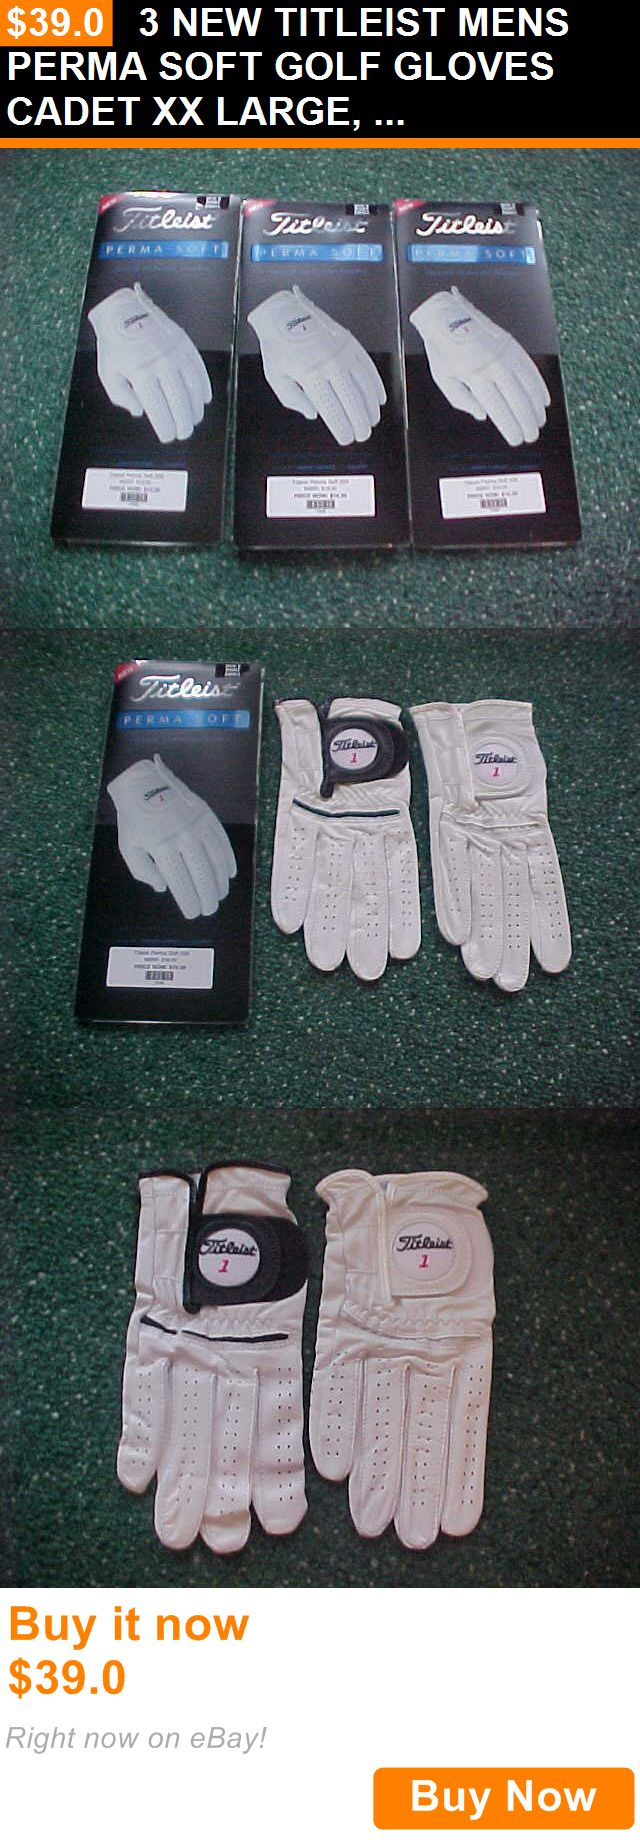 Mens gloves cadet - Golf Gloves 181146 3 New Titleist Mens Perma Soft Golf Gloves Cadet Xx Large Right Handed Man Buy It Now Only 39 0 Golf Gloves 181146 Pinterest